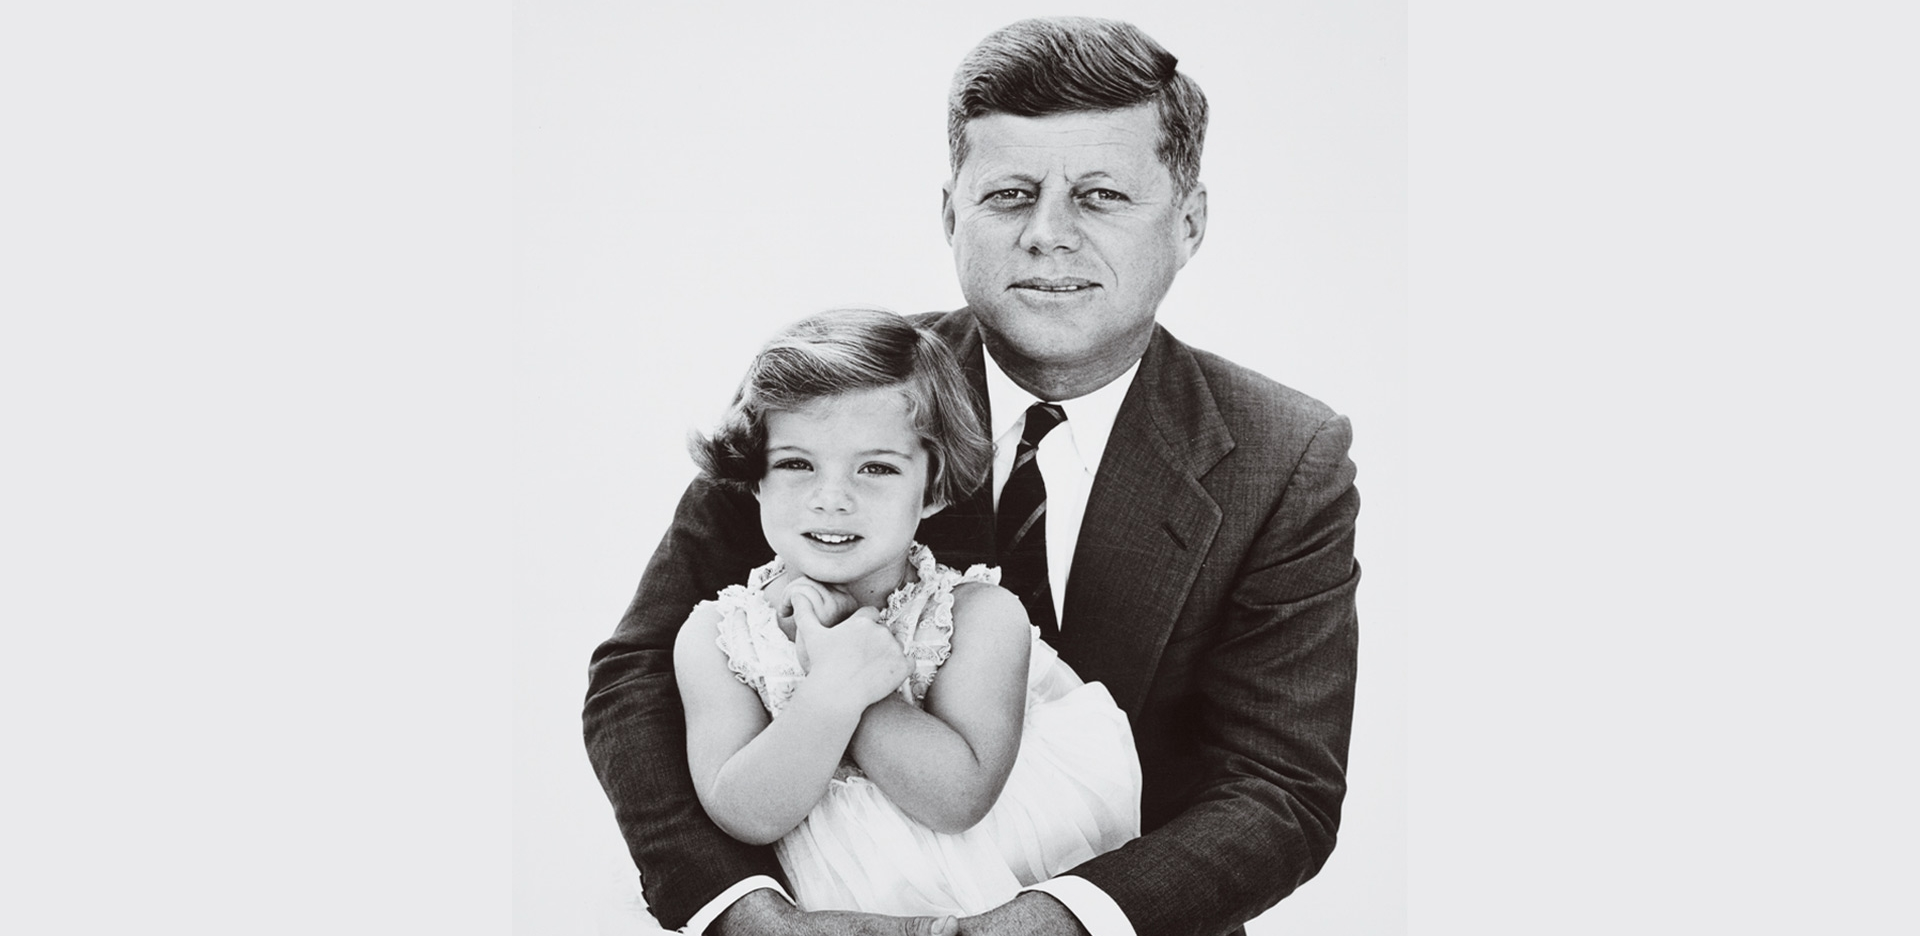 John F. Kennedy holding his daughter.